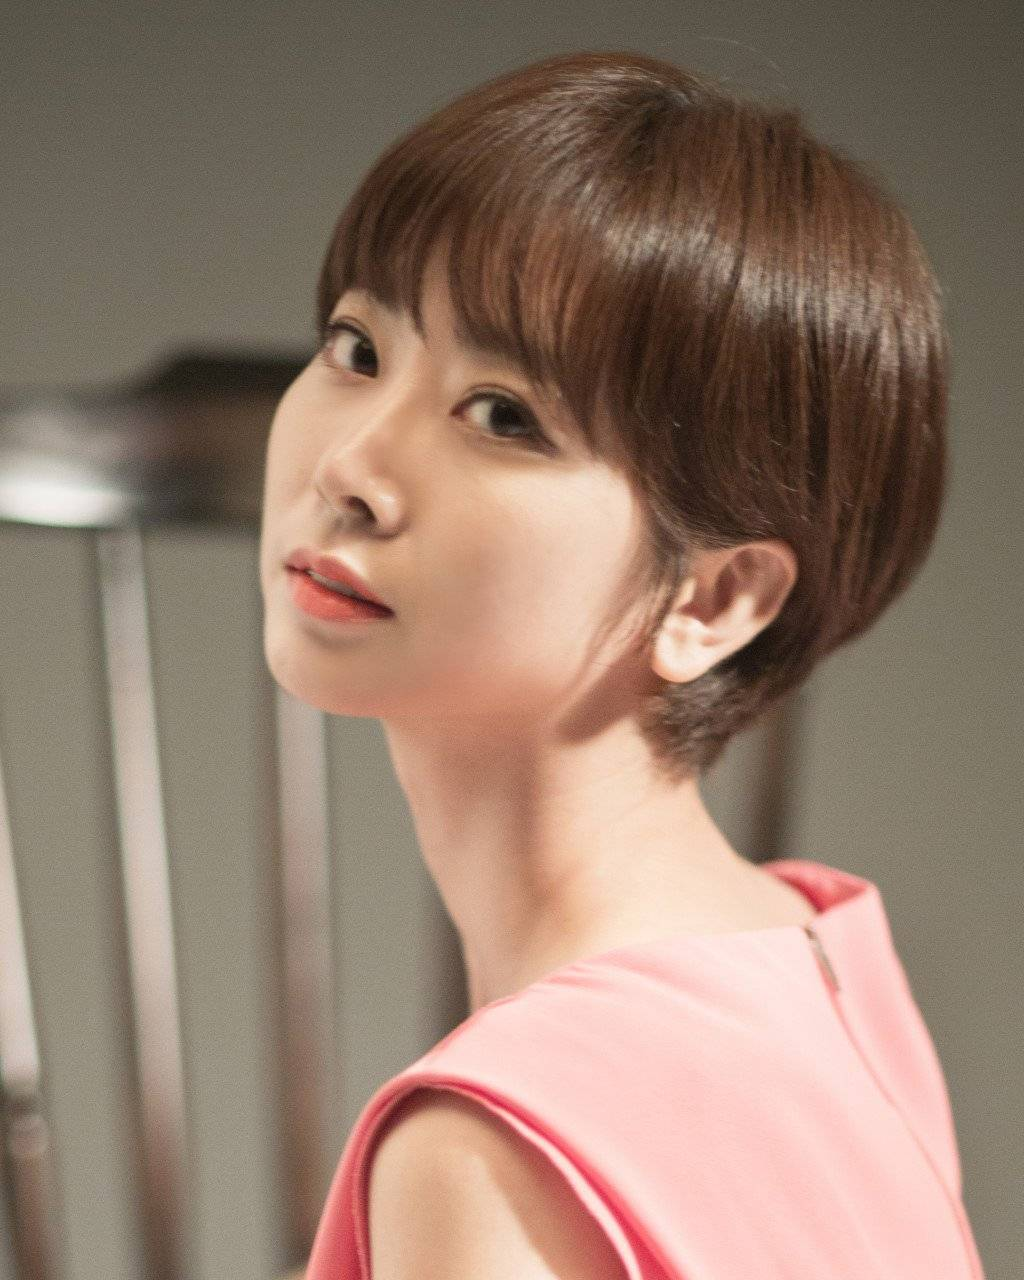 Lee Jang mi 이장미 Korean actress model HanCinema The